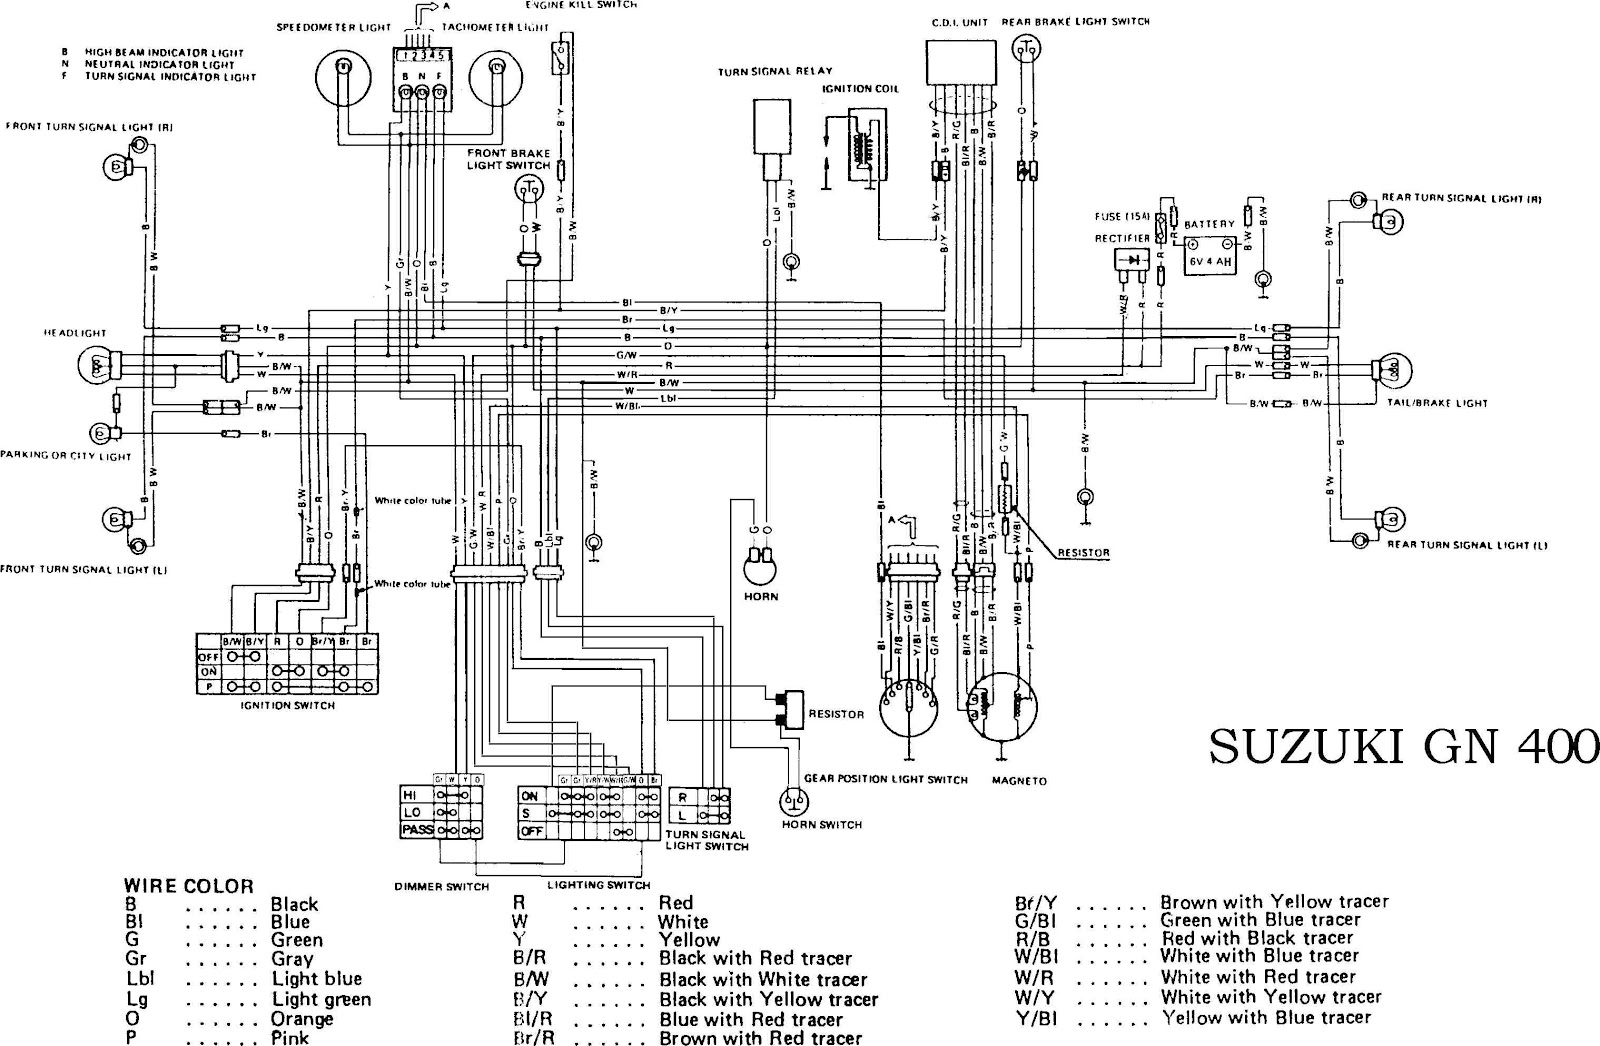 Ducati Superbike Wiring Diagram Get Free Image About Wiring Diagram